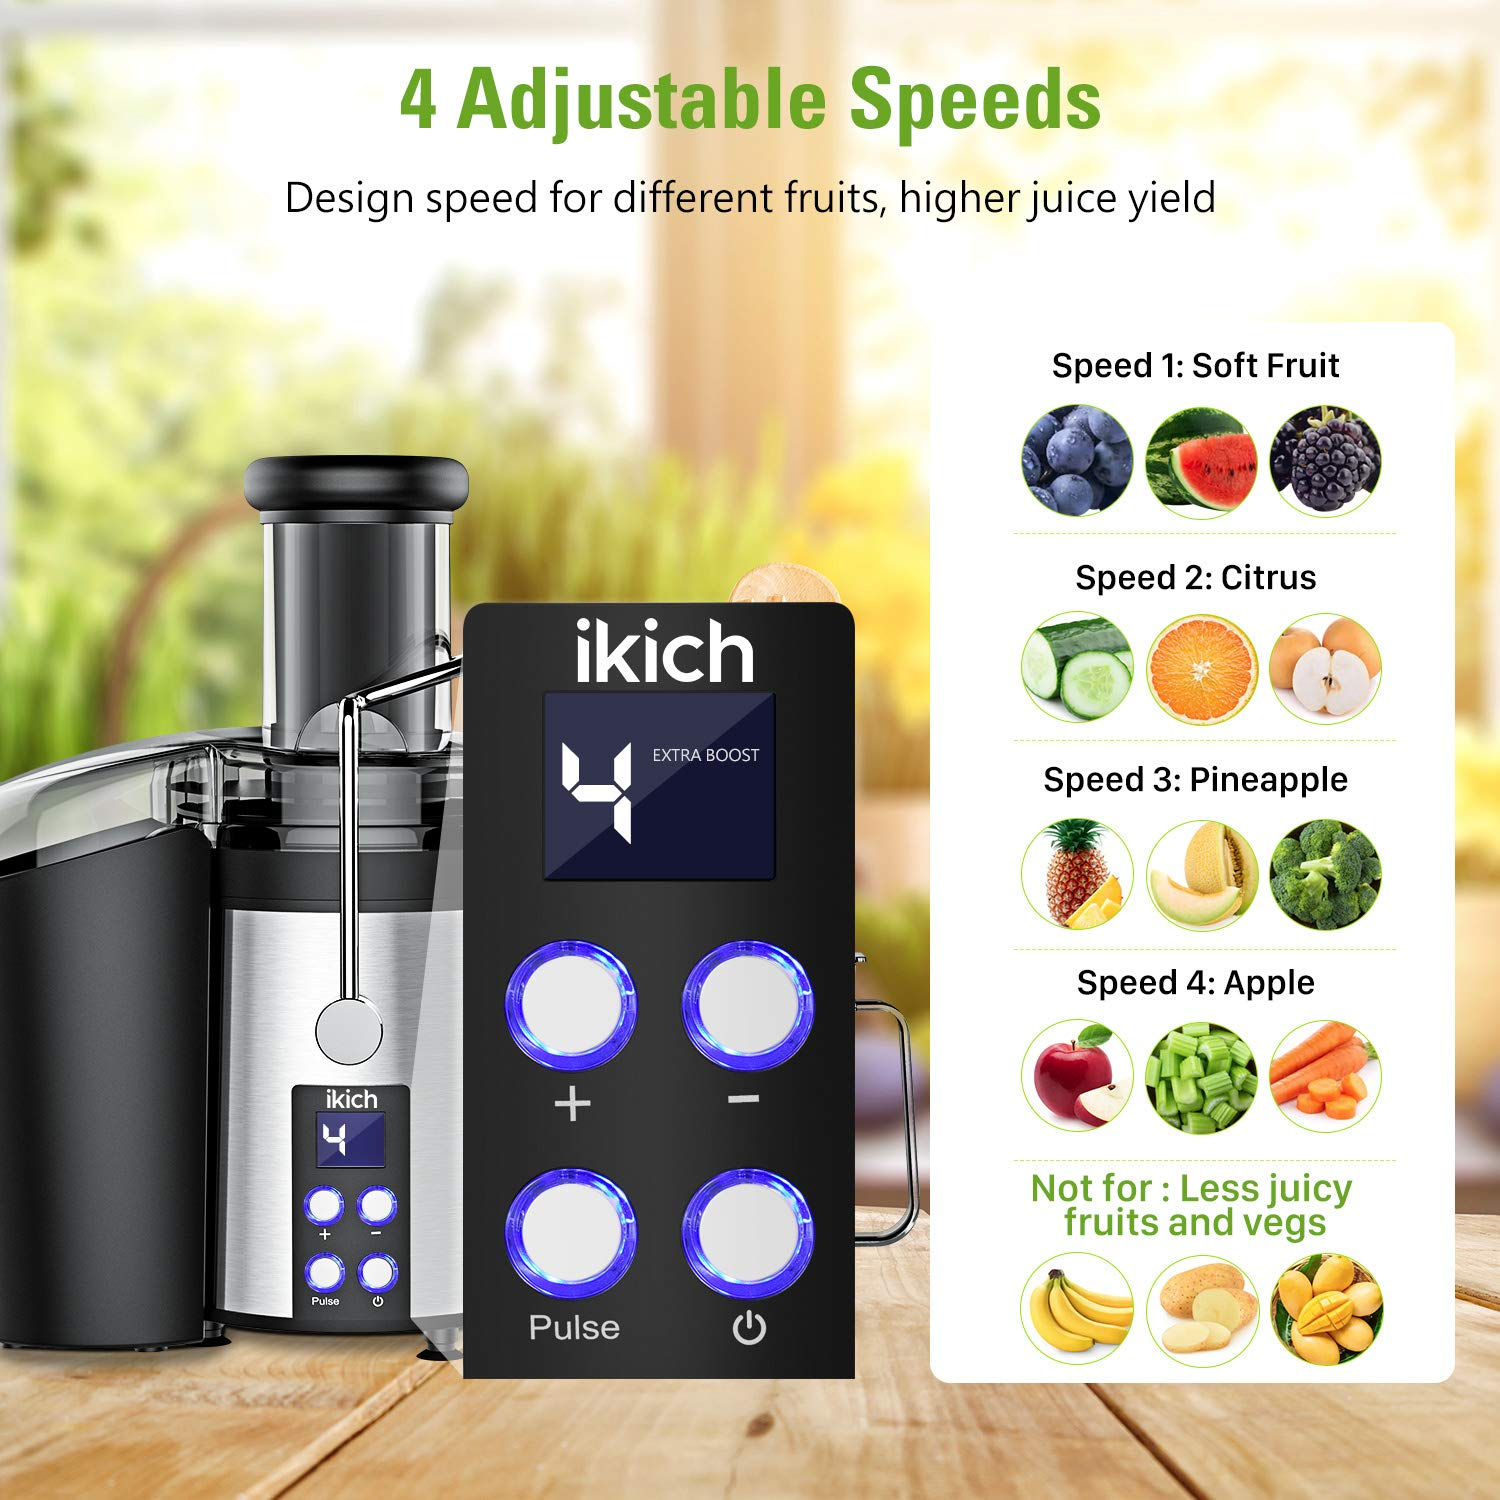 1199 RPM Centrifugal Juicer Creates More Juice and High Nutrient